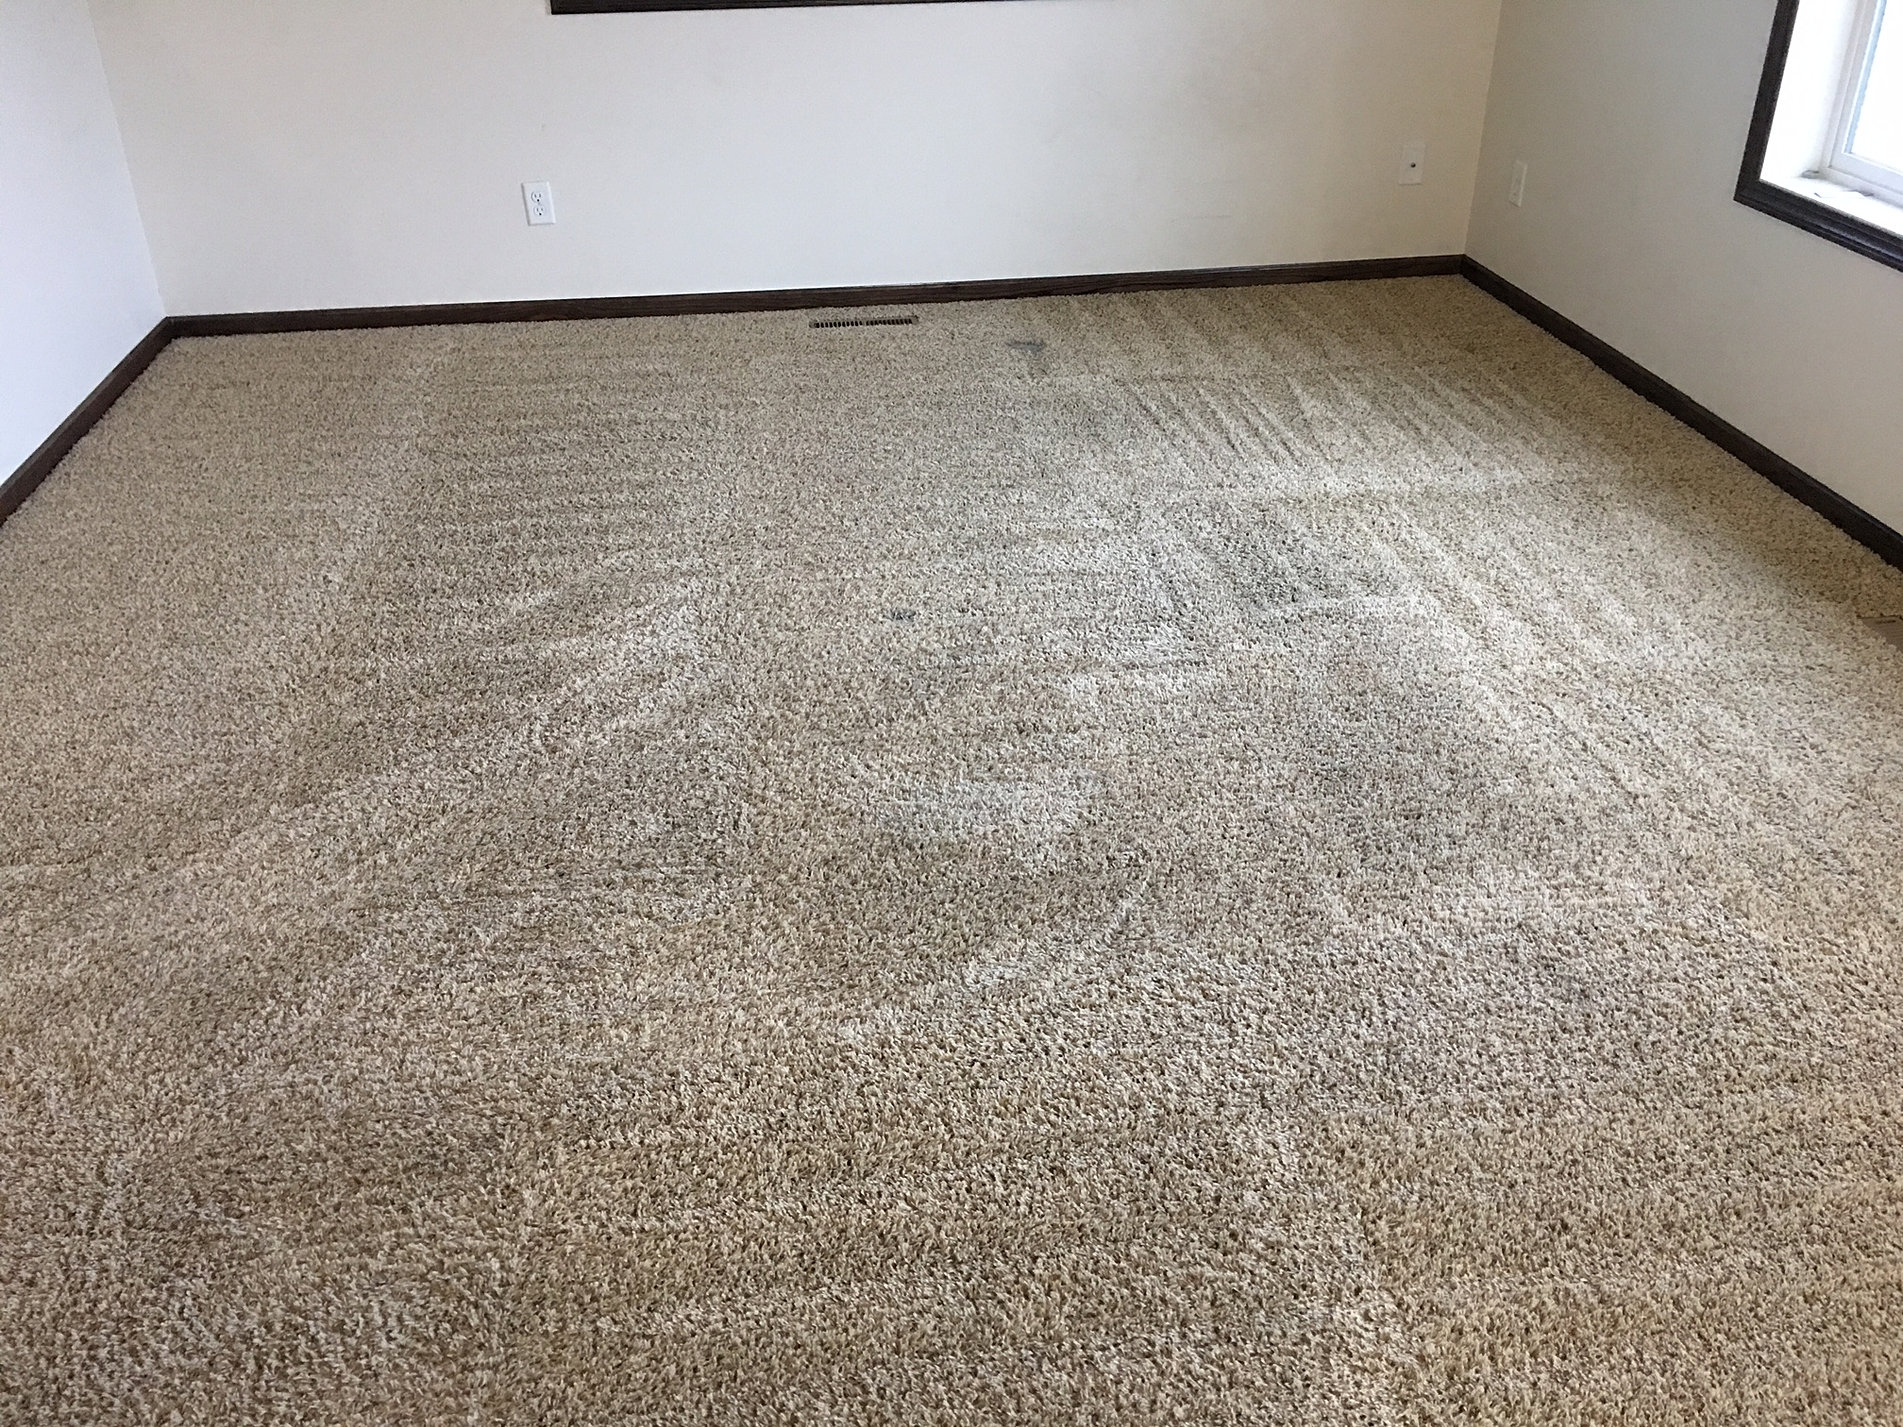 Express Carpet Cleaners Carpet Cleaning Service Discounts